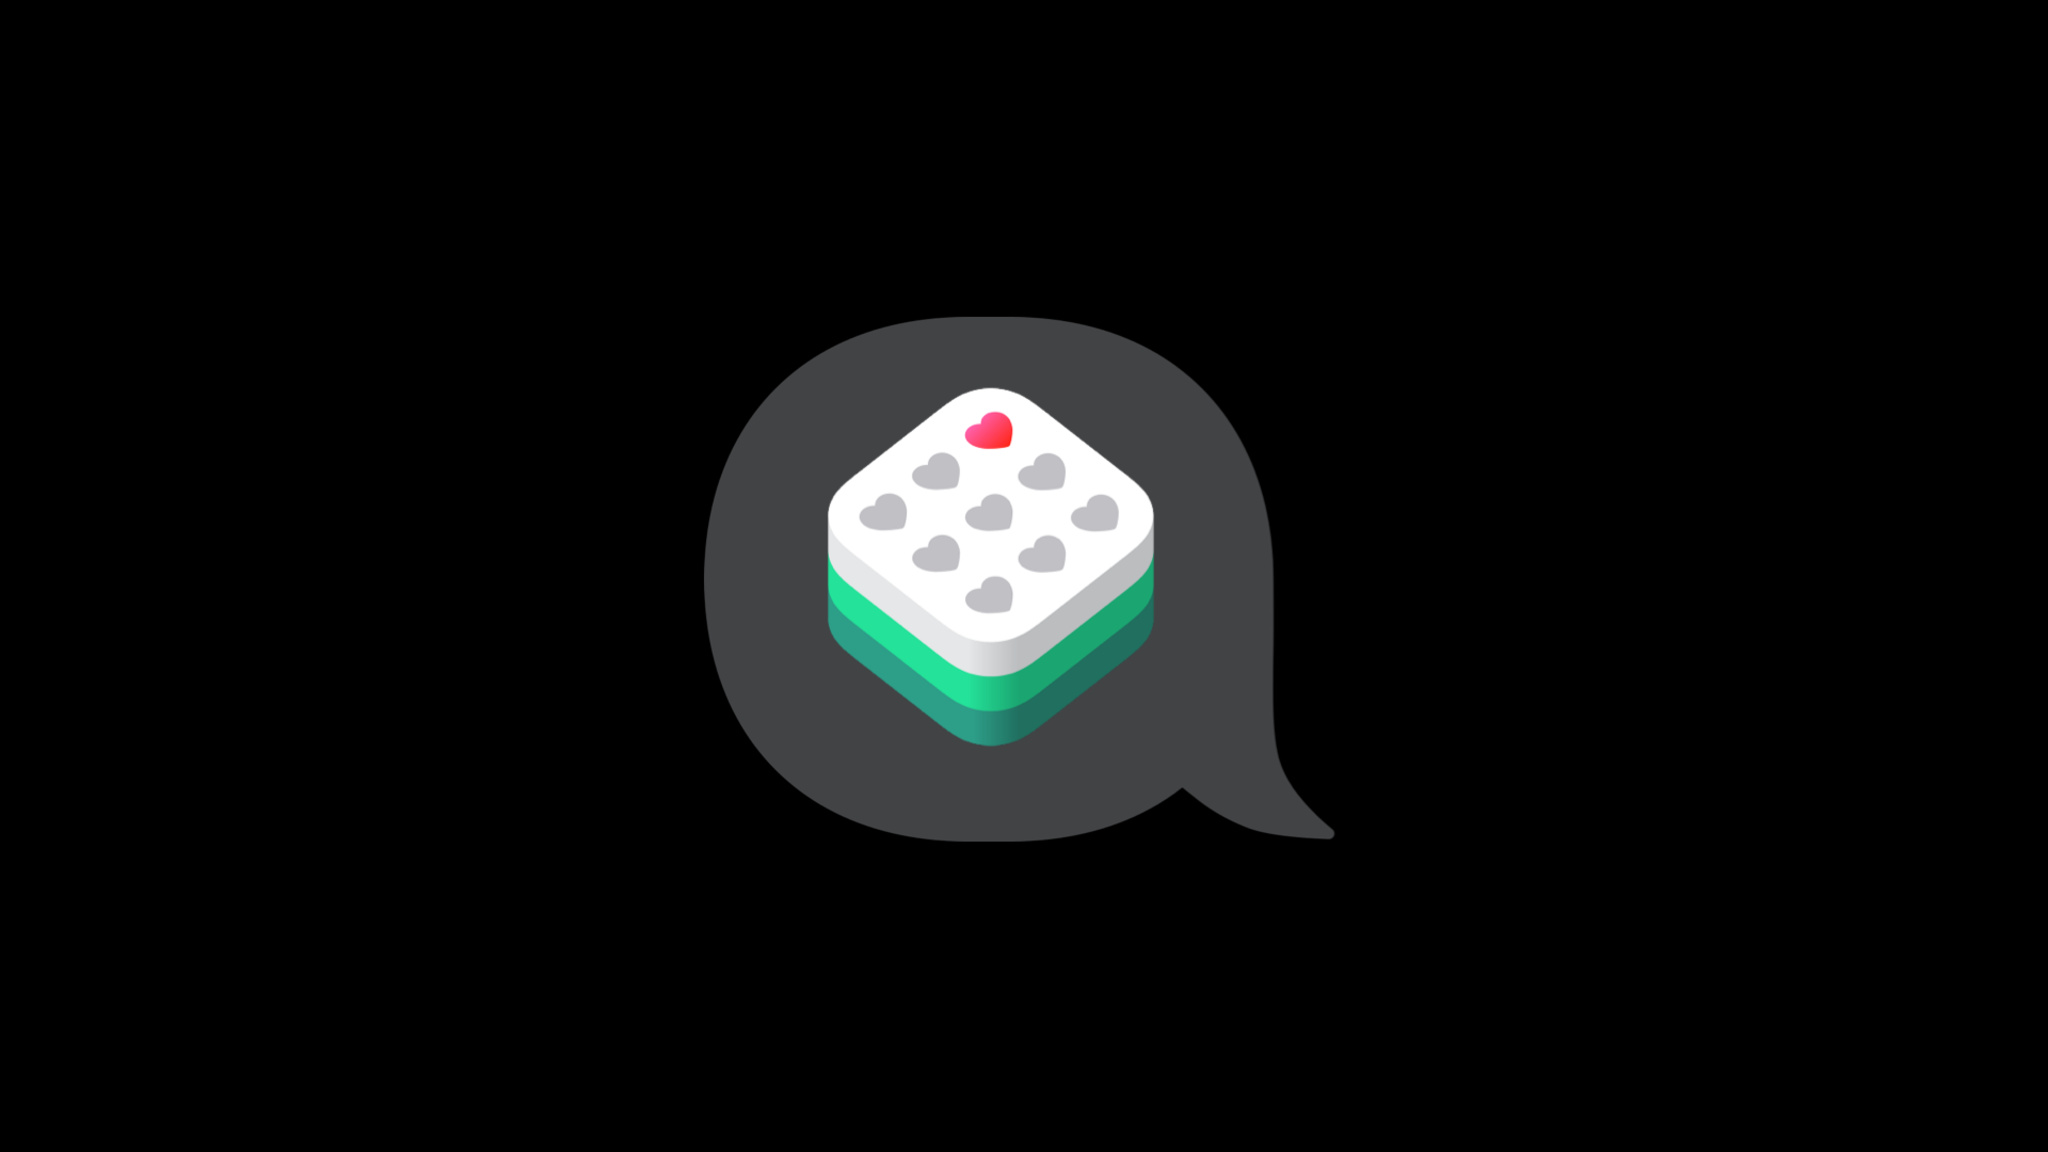 app icon displaying 8 gray hearts and 1 red heart,  inside of a speech bubble.